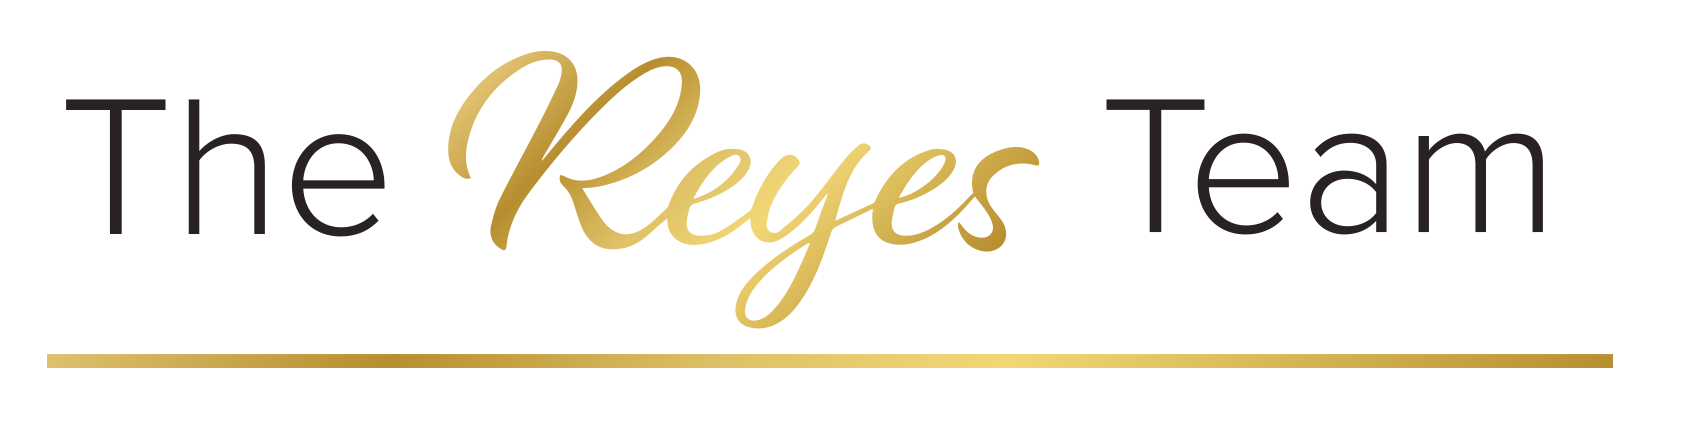 Reyes gold and black png.png